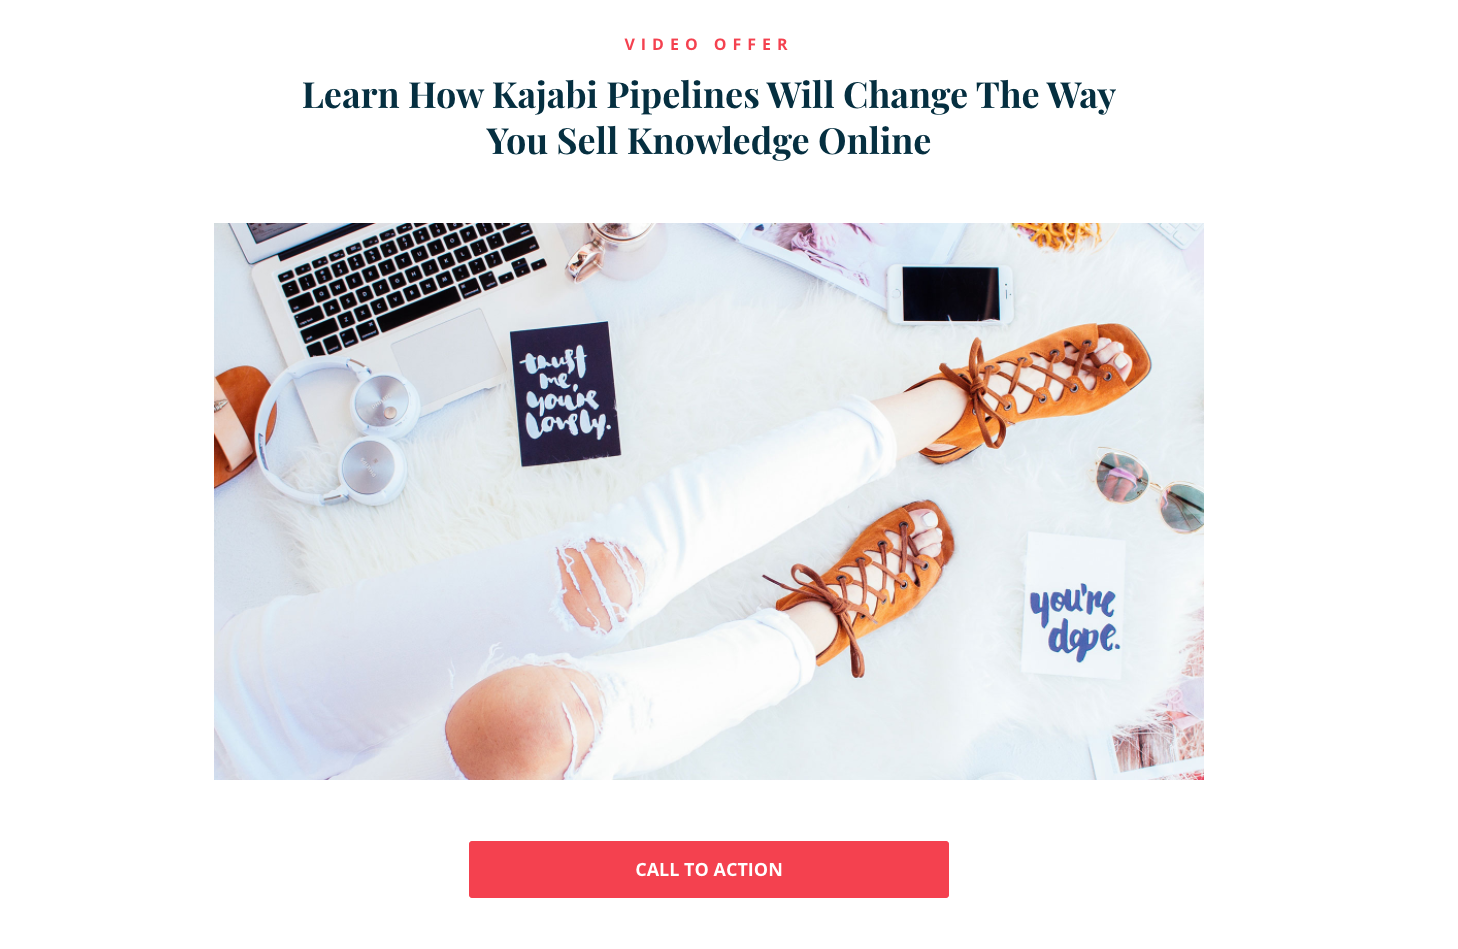 Kajabi landing page with an image of a person's legs and office equipment above a fuchsia call to action button